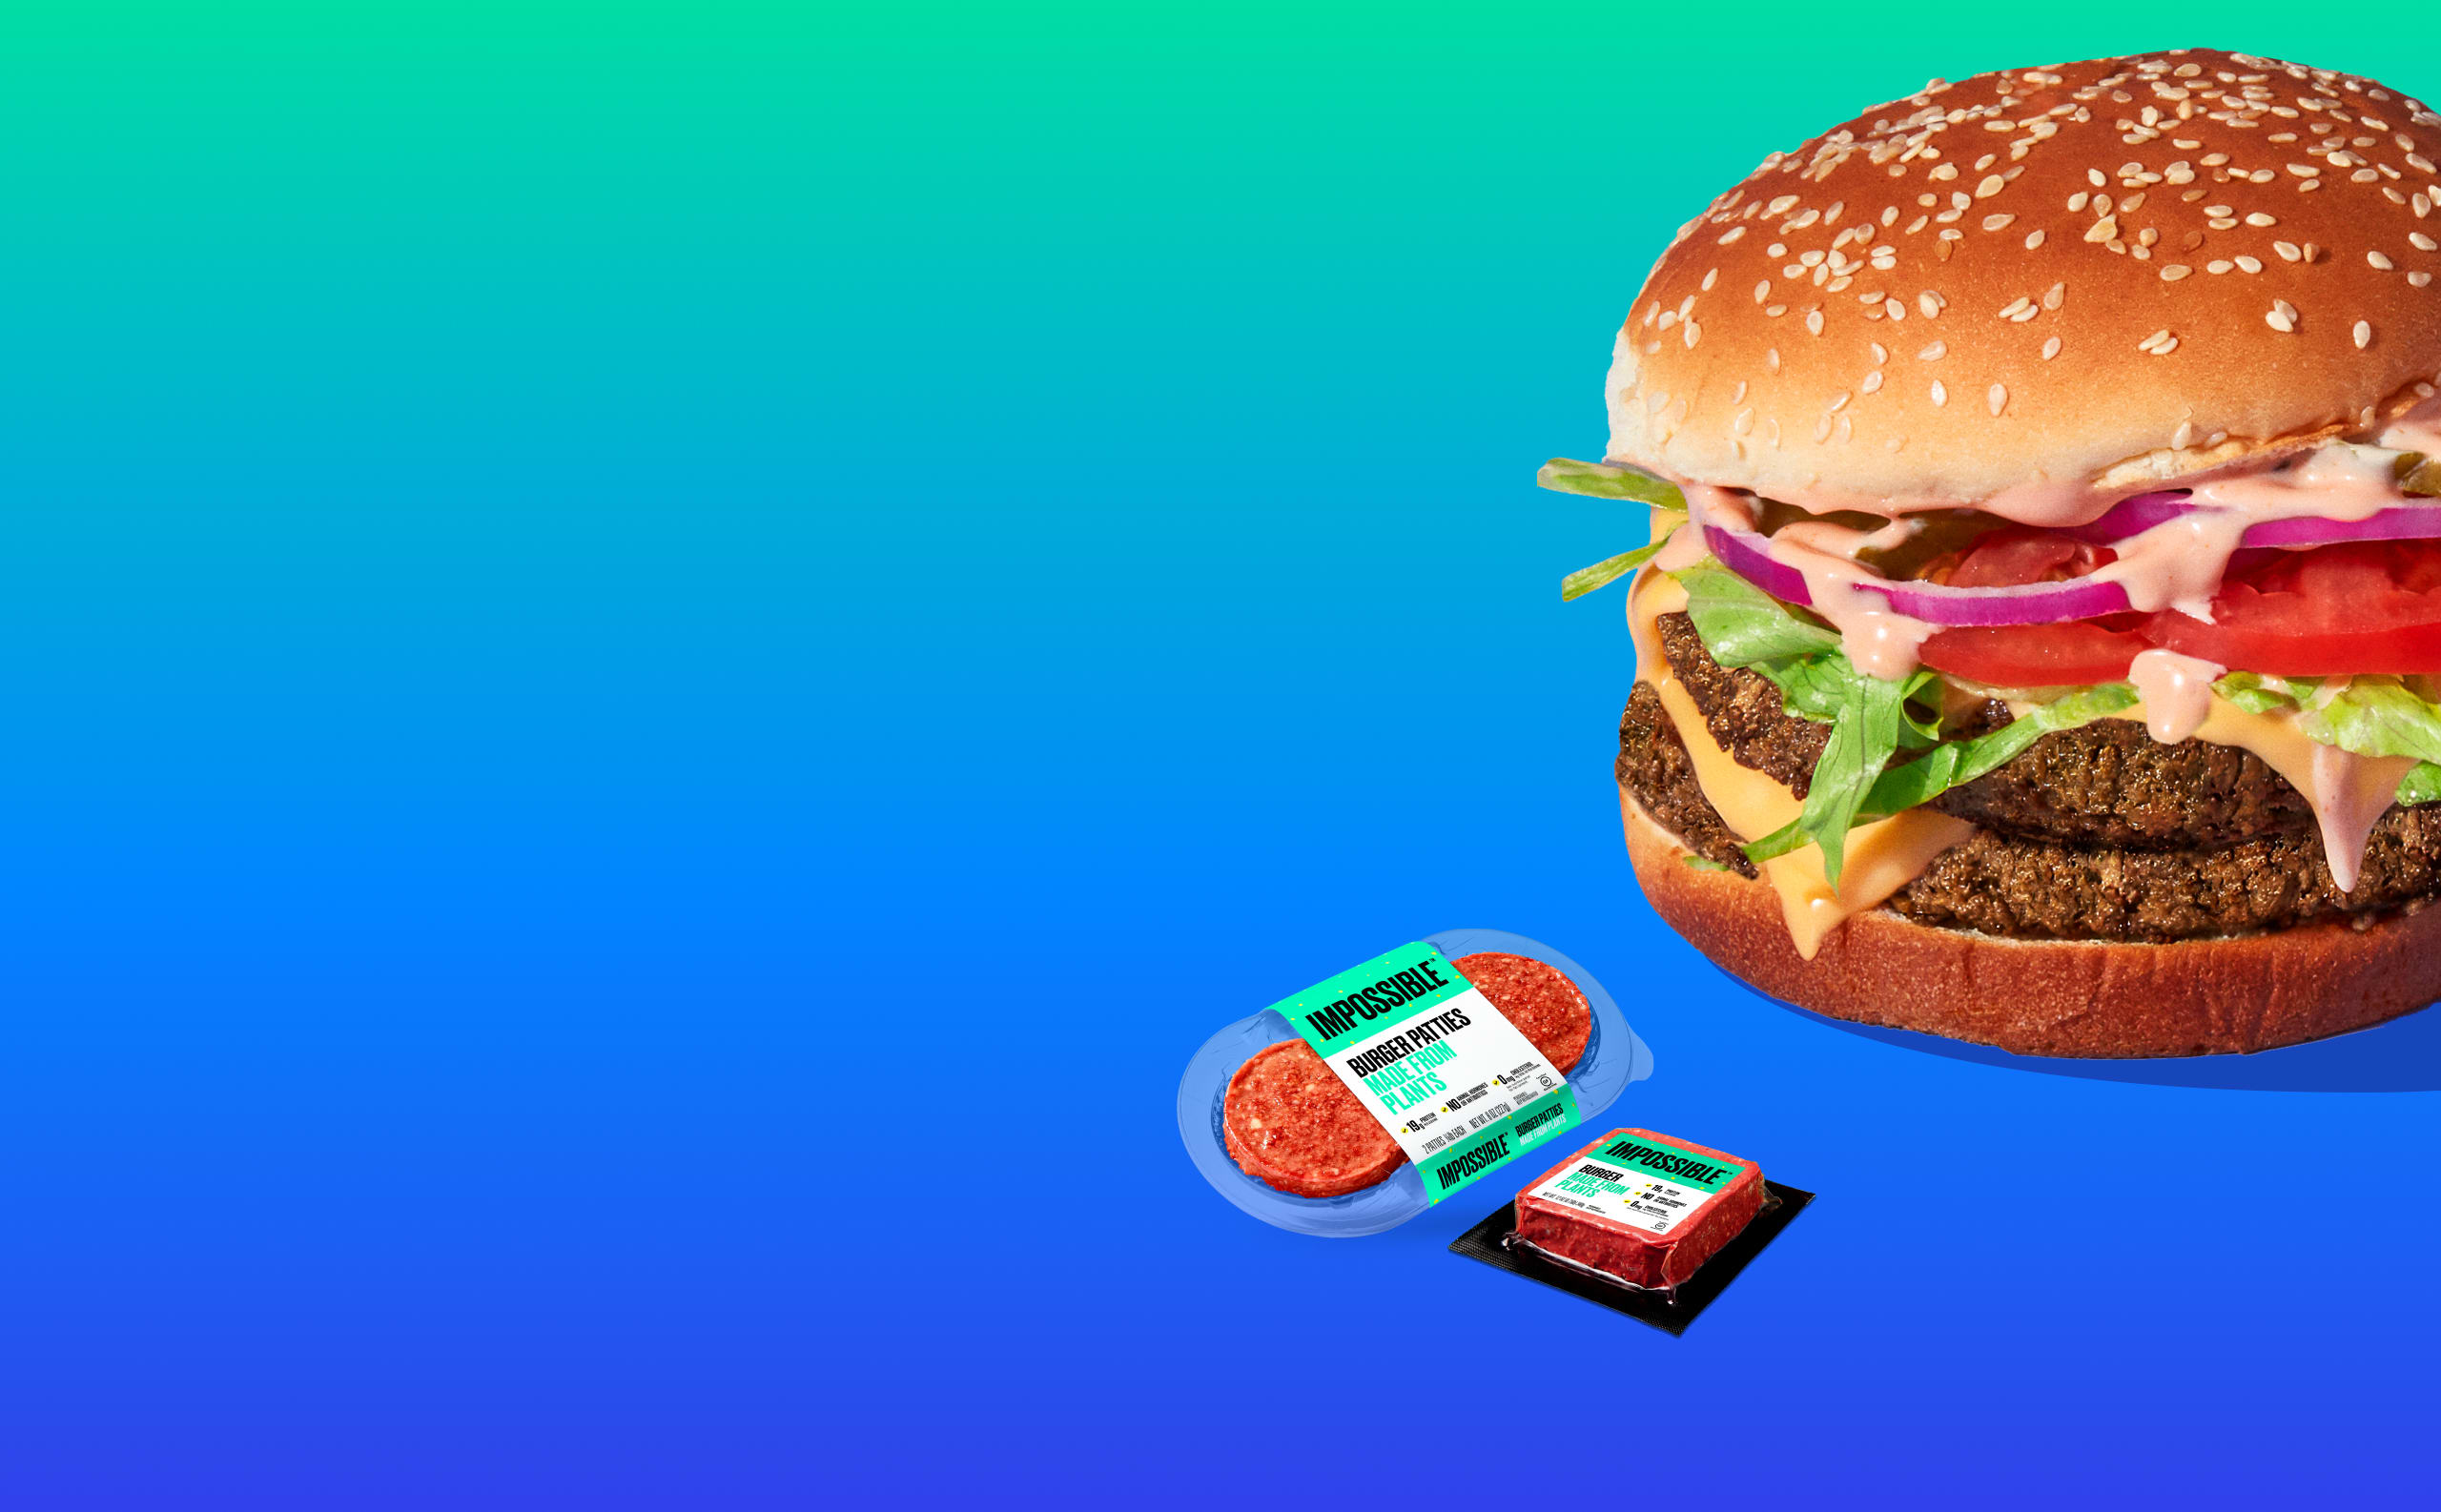 Impossible Burger hero shot, grocery 12 oz pack and patty 2-pack on a green/blue gradient background.